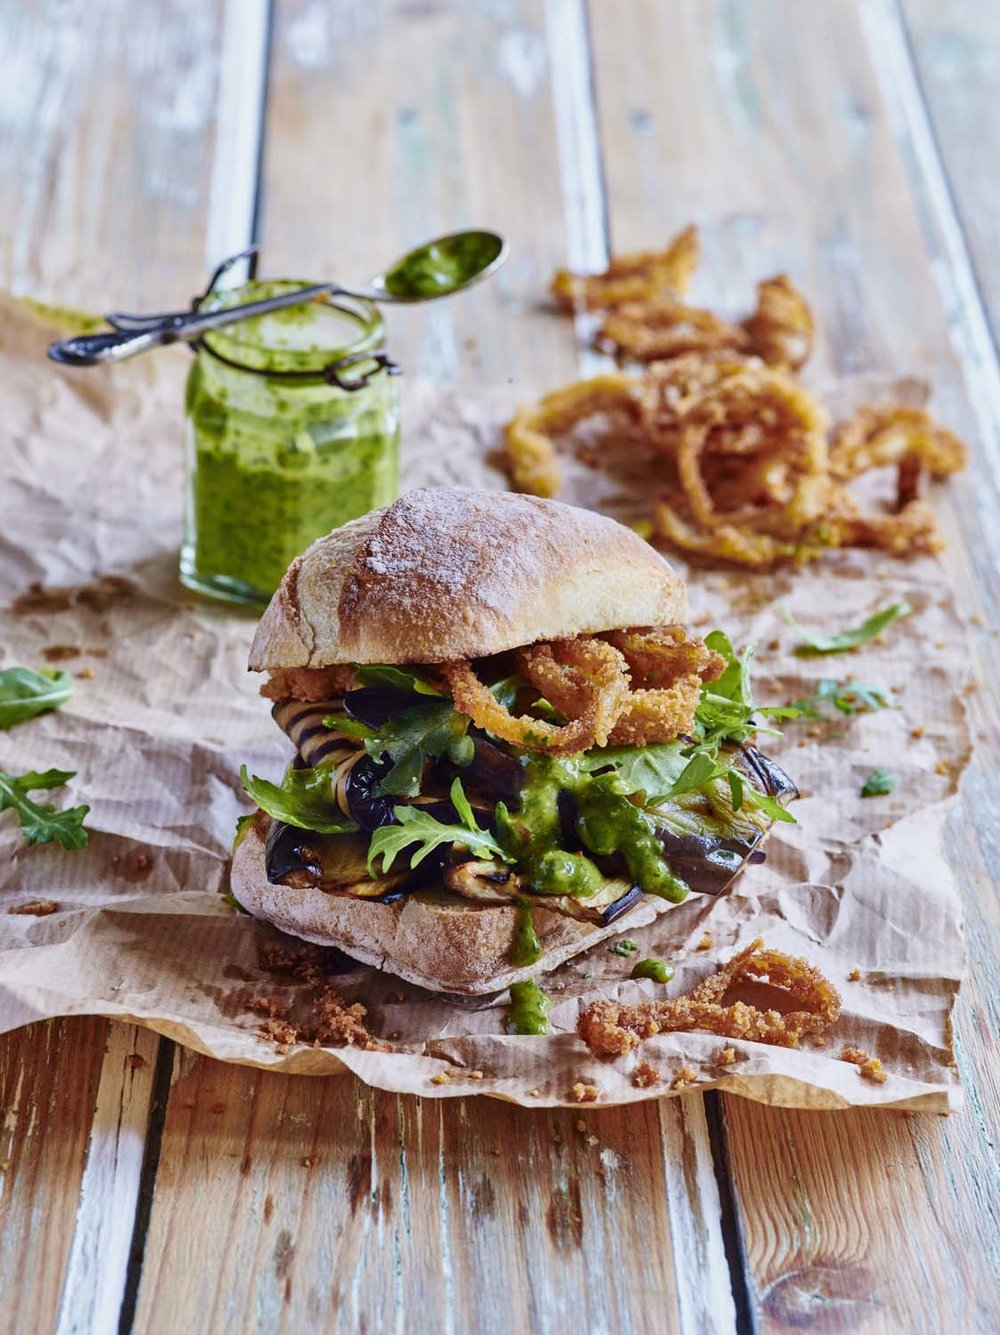 Aubergine burgers with chimichuri copy 2.jpg